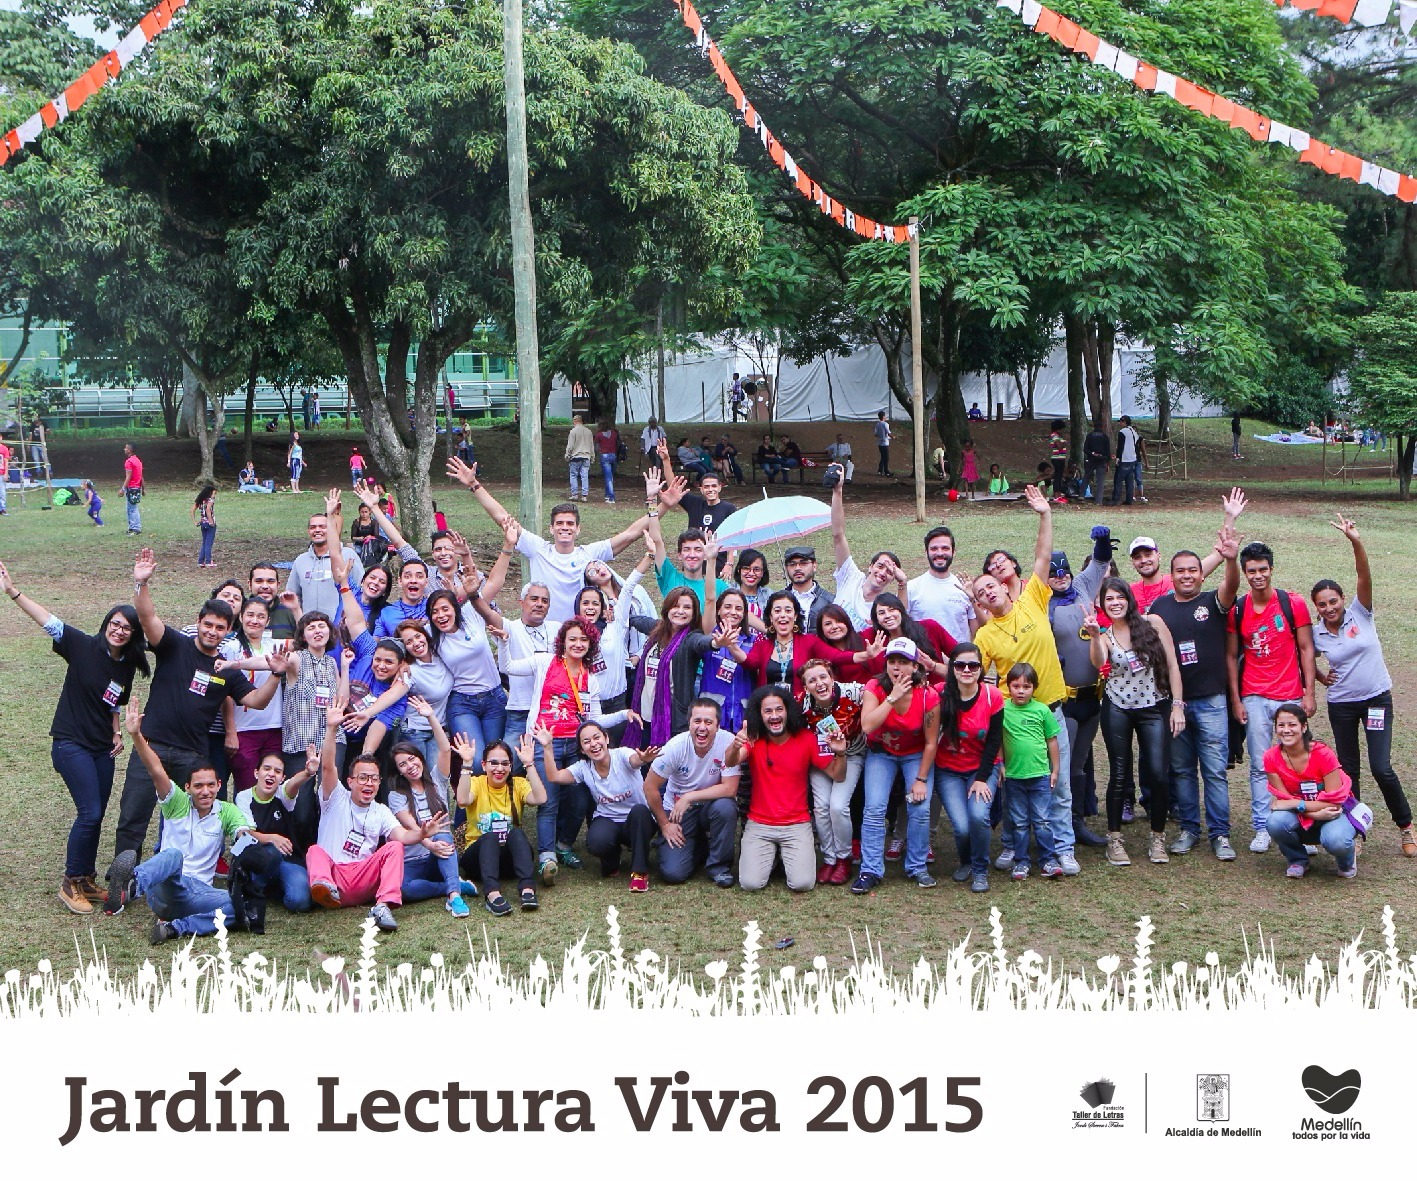 Documental Jardín Lectura Viva 2015